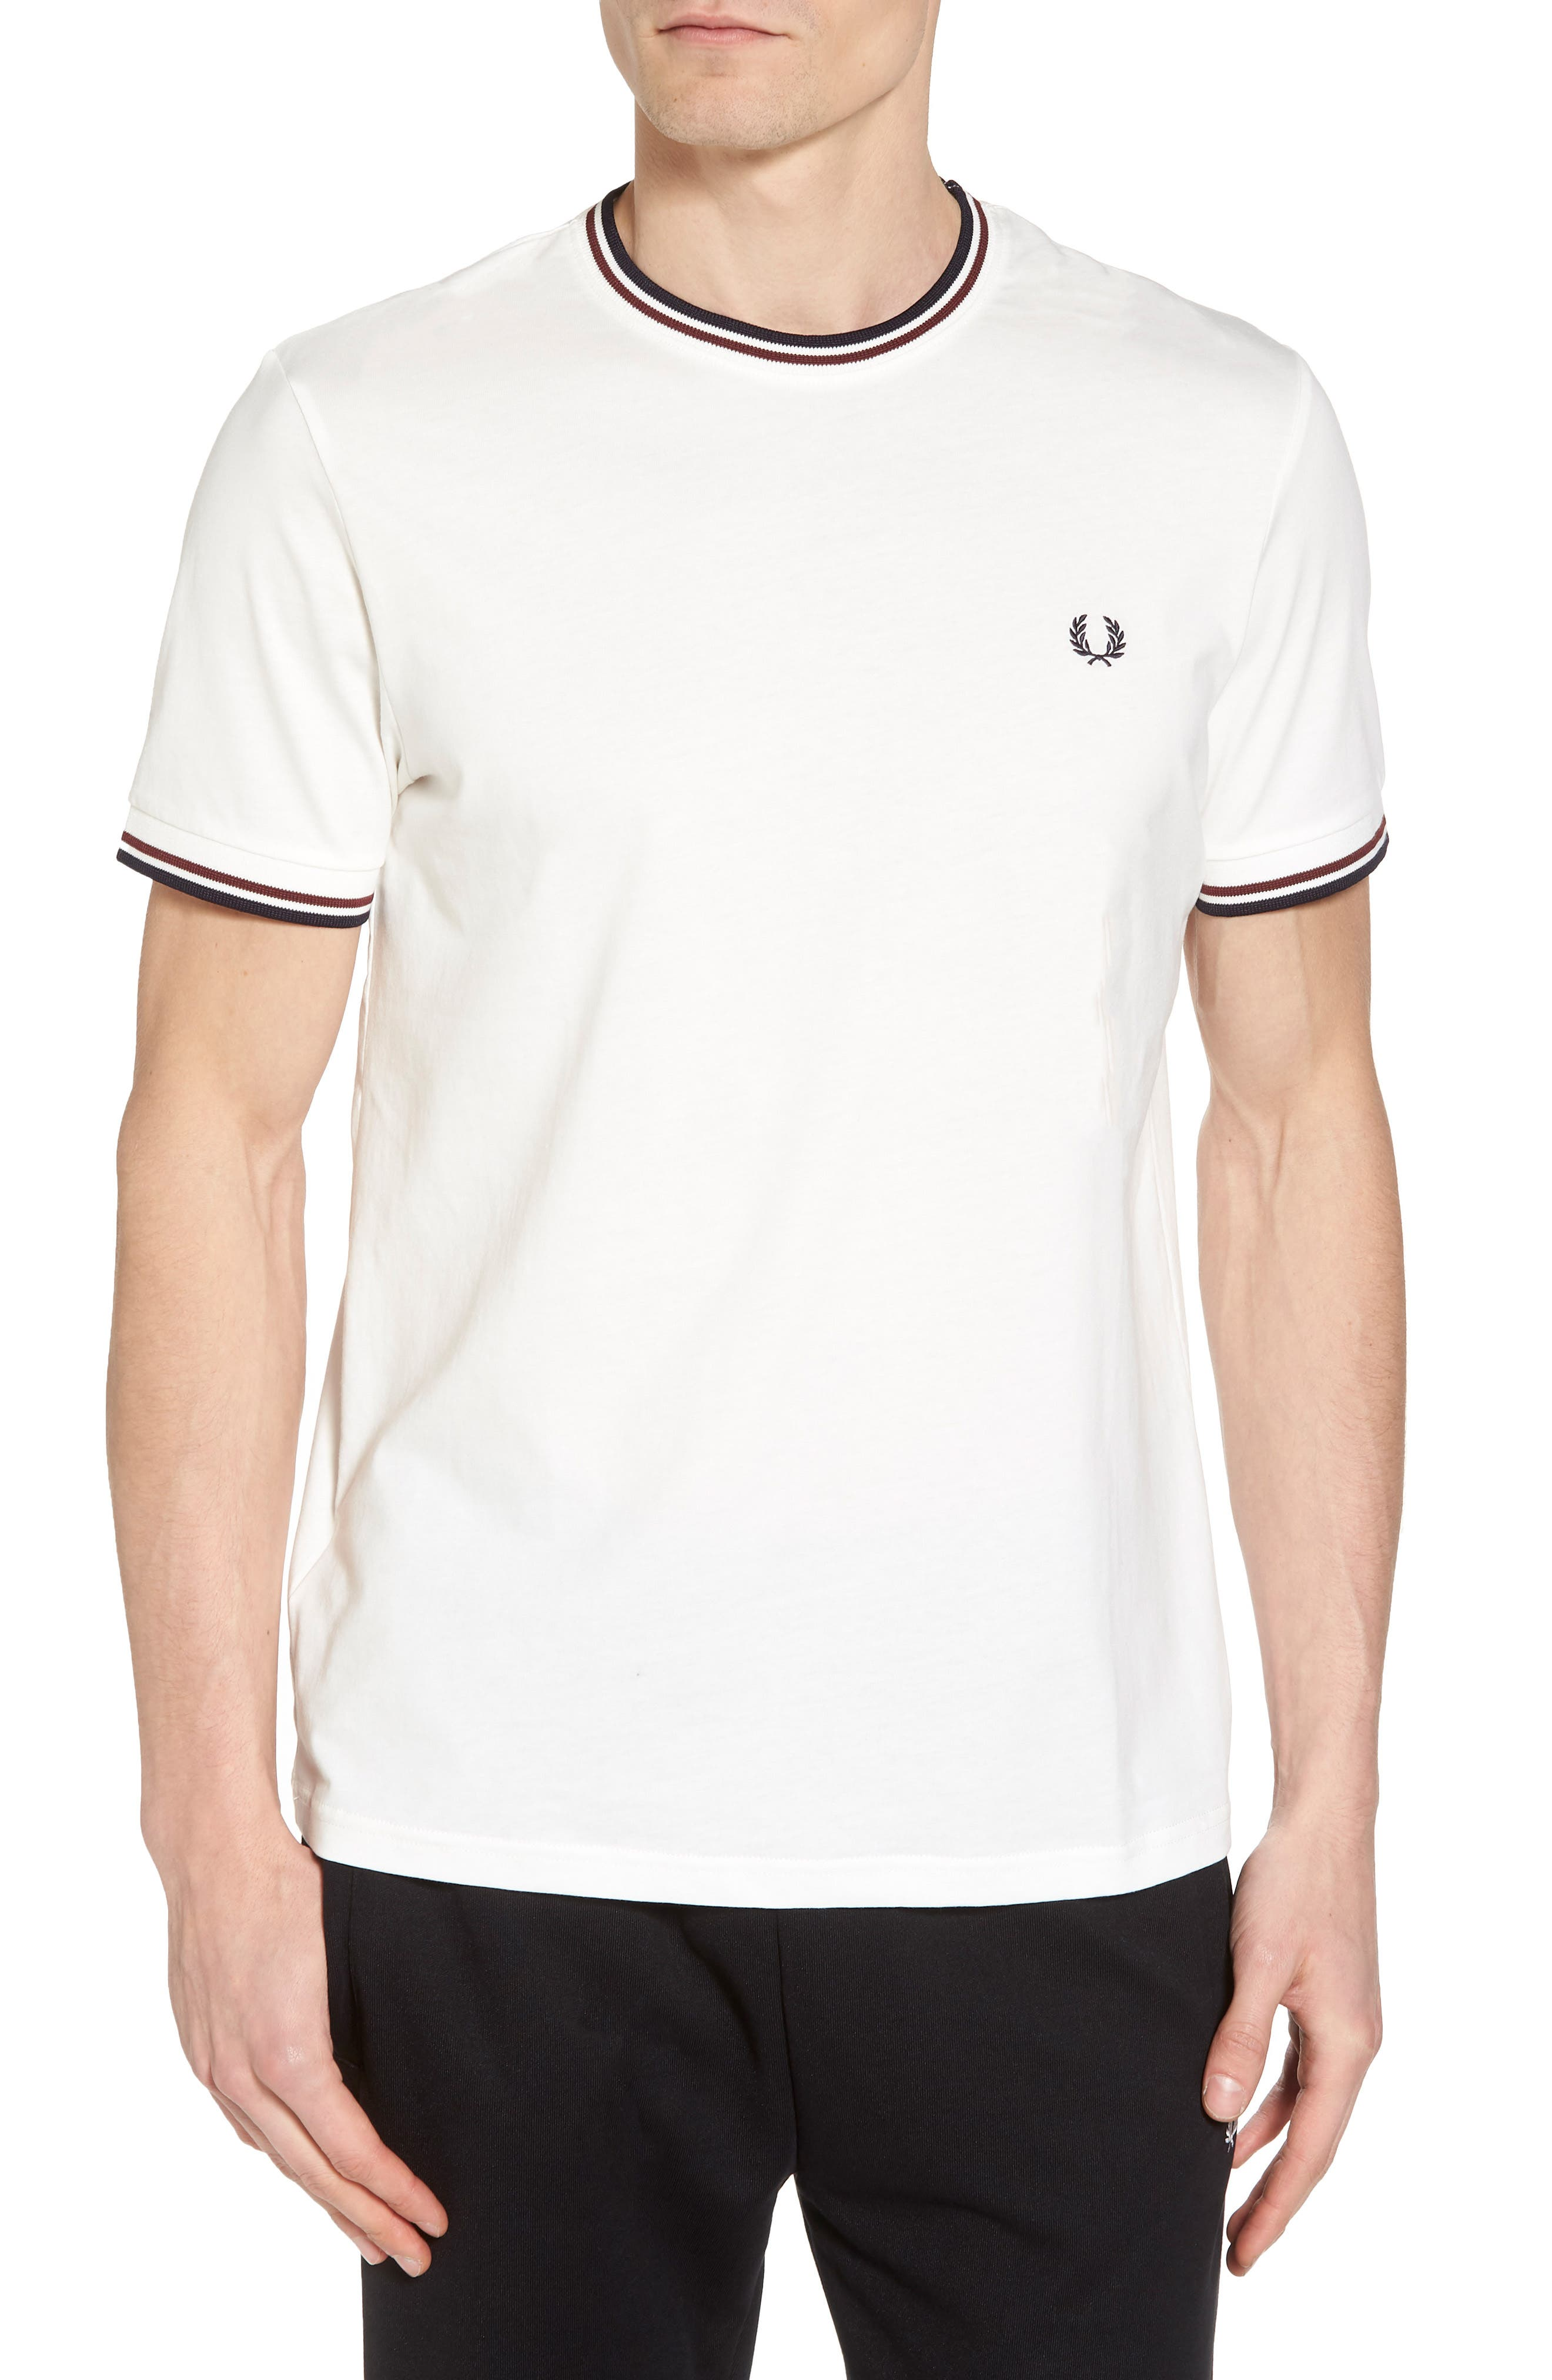 FRED PERRY Tipped T-Shirt, Main, color, 100